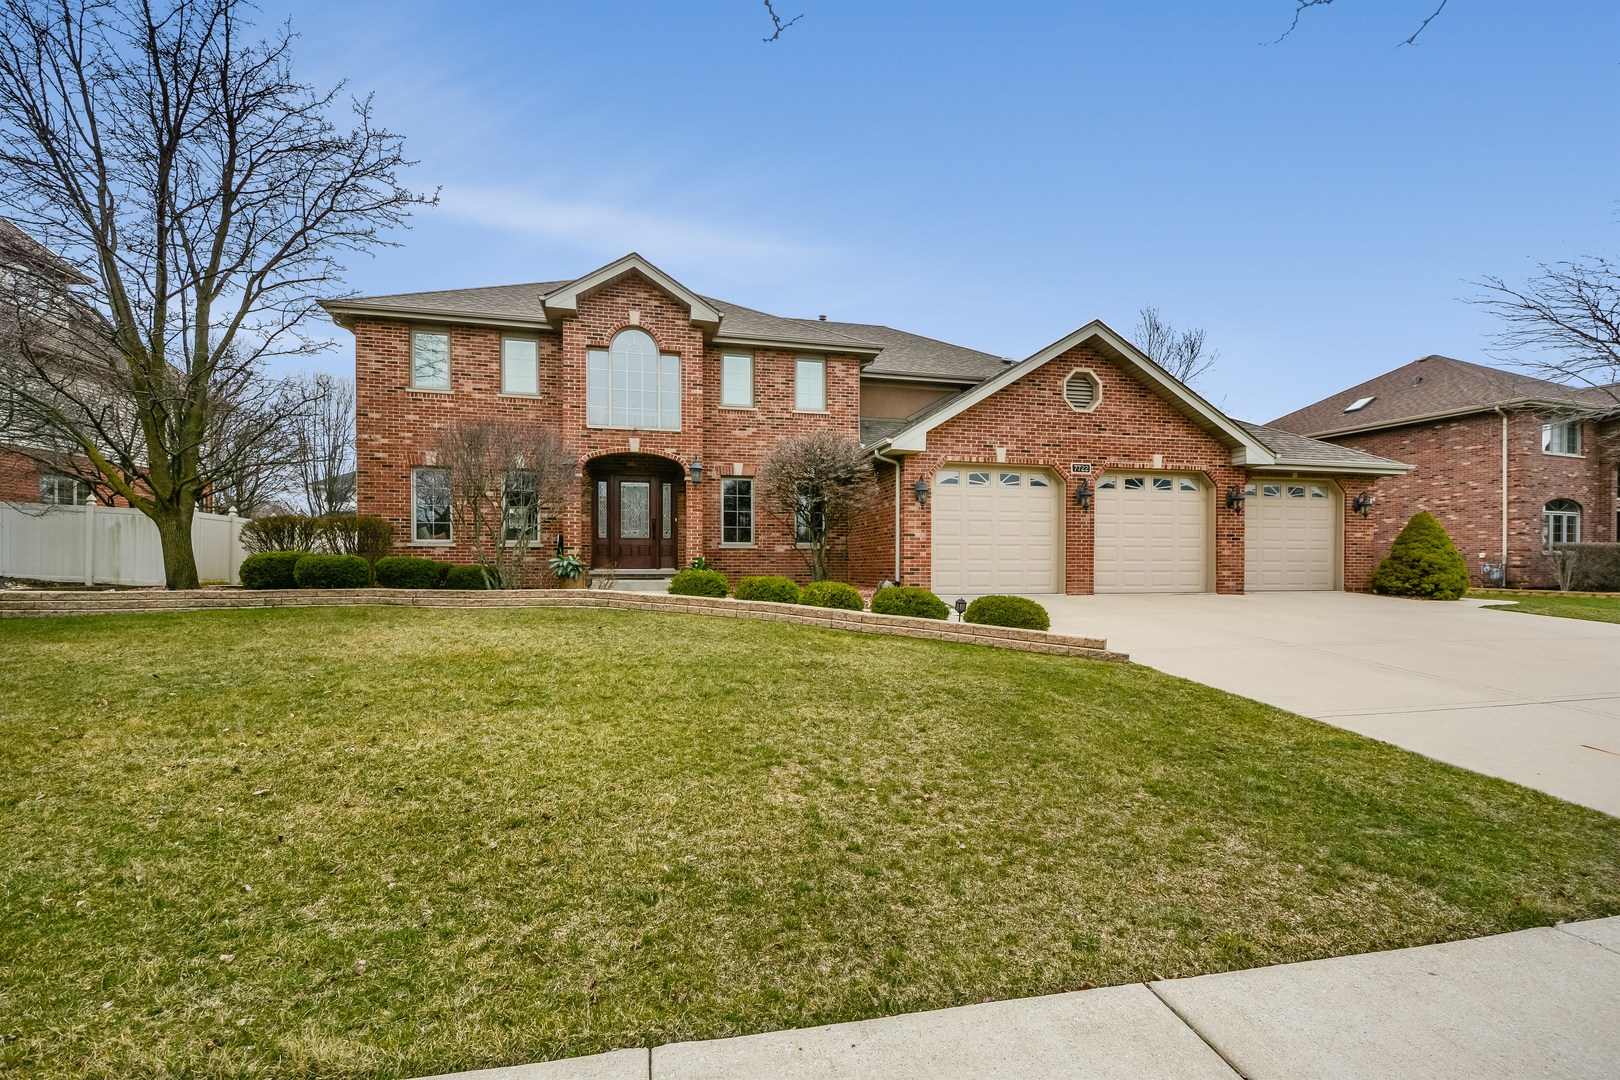 7722 Marquette Drive South, Tinley Park, Illinois